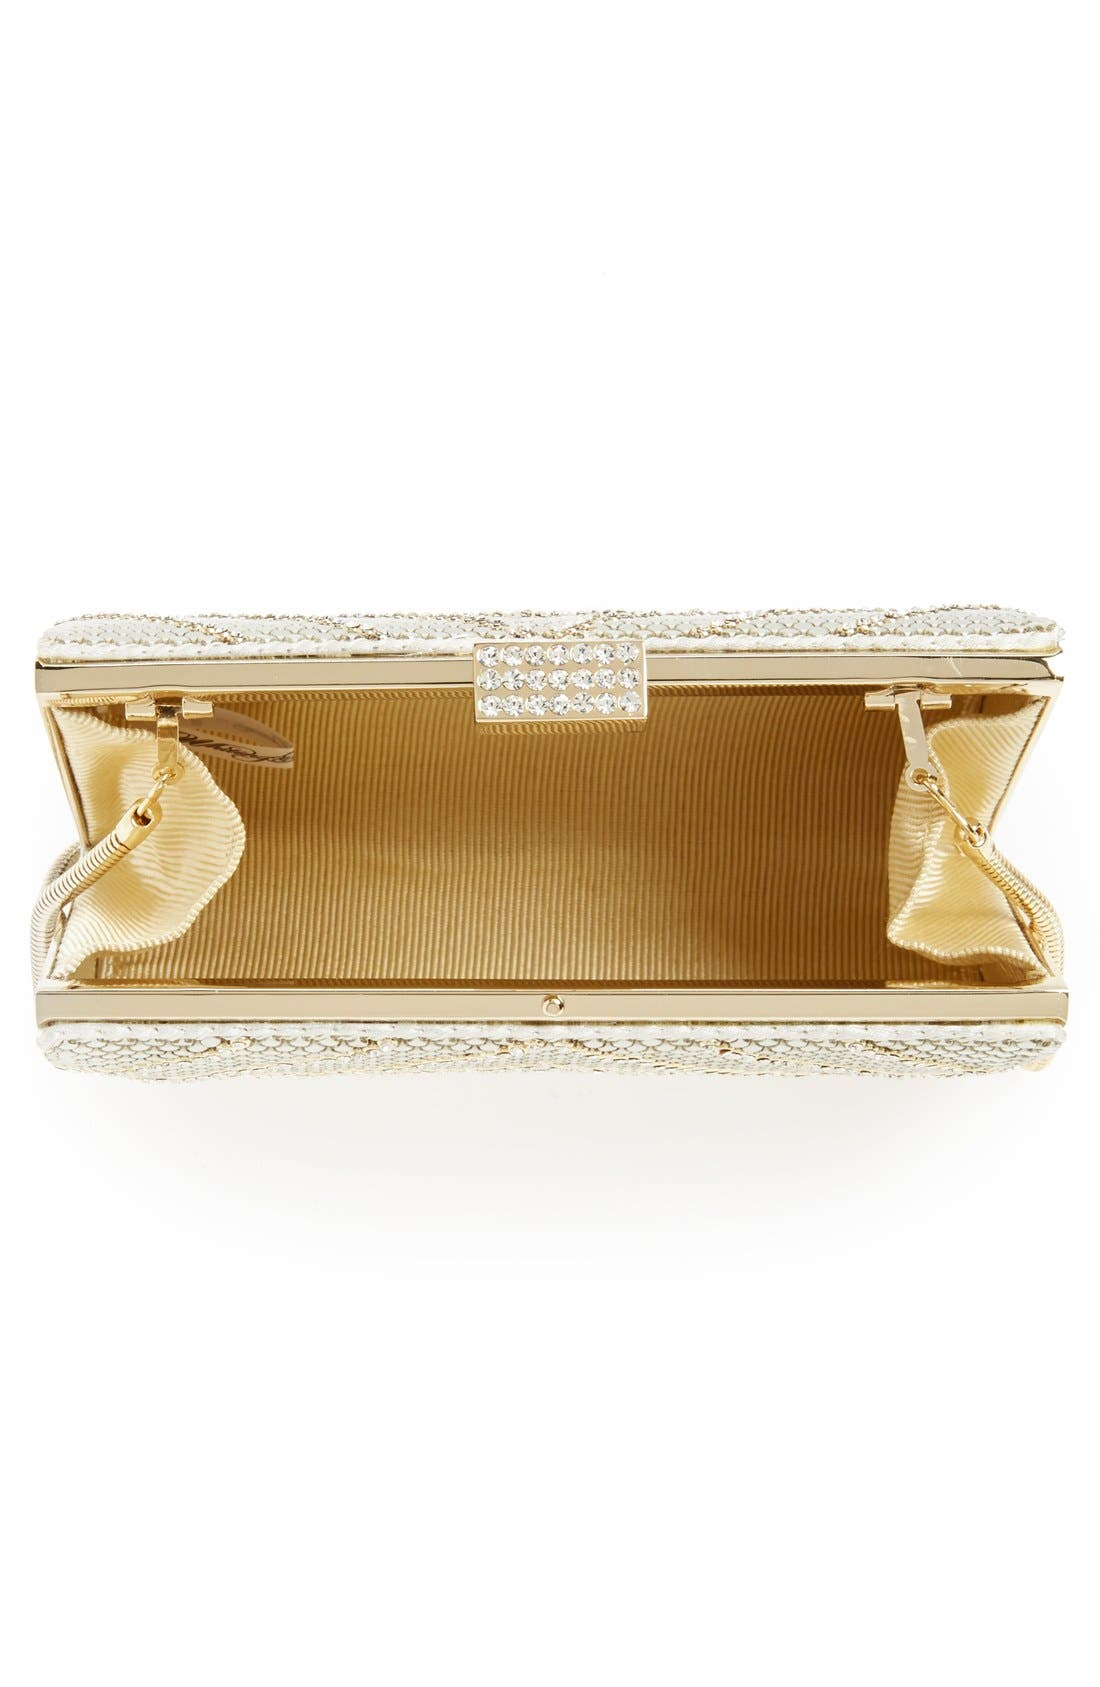 Alternate Image 3  - Whiting & Davis 'Diamond Heights' Clutch